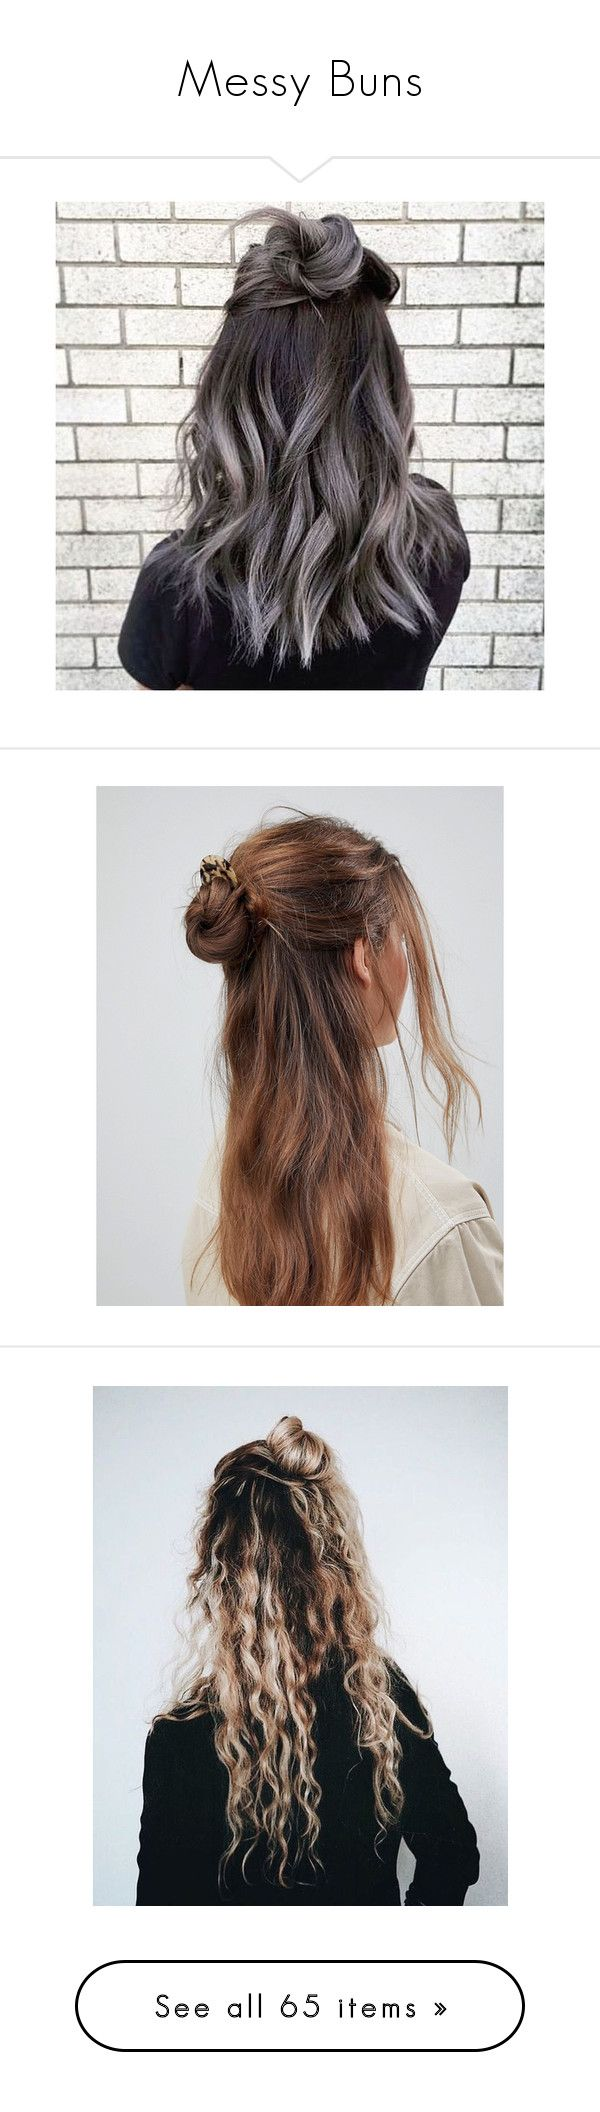 """Messy Buns"" by natalialovesnutella ❤ liked on Polyvore featuring accessories, hair accessories, hair, silver hair accessories, multi, tortoise hair accessories, tortoise shell hair accessories, tortoise hair pins, asos hair accessories and bobby hair pins"